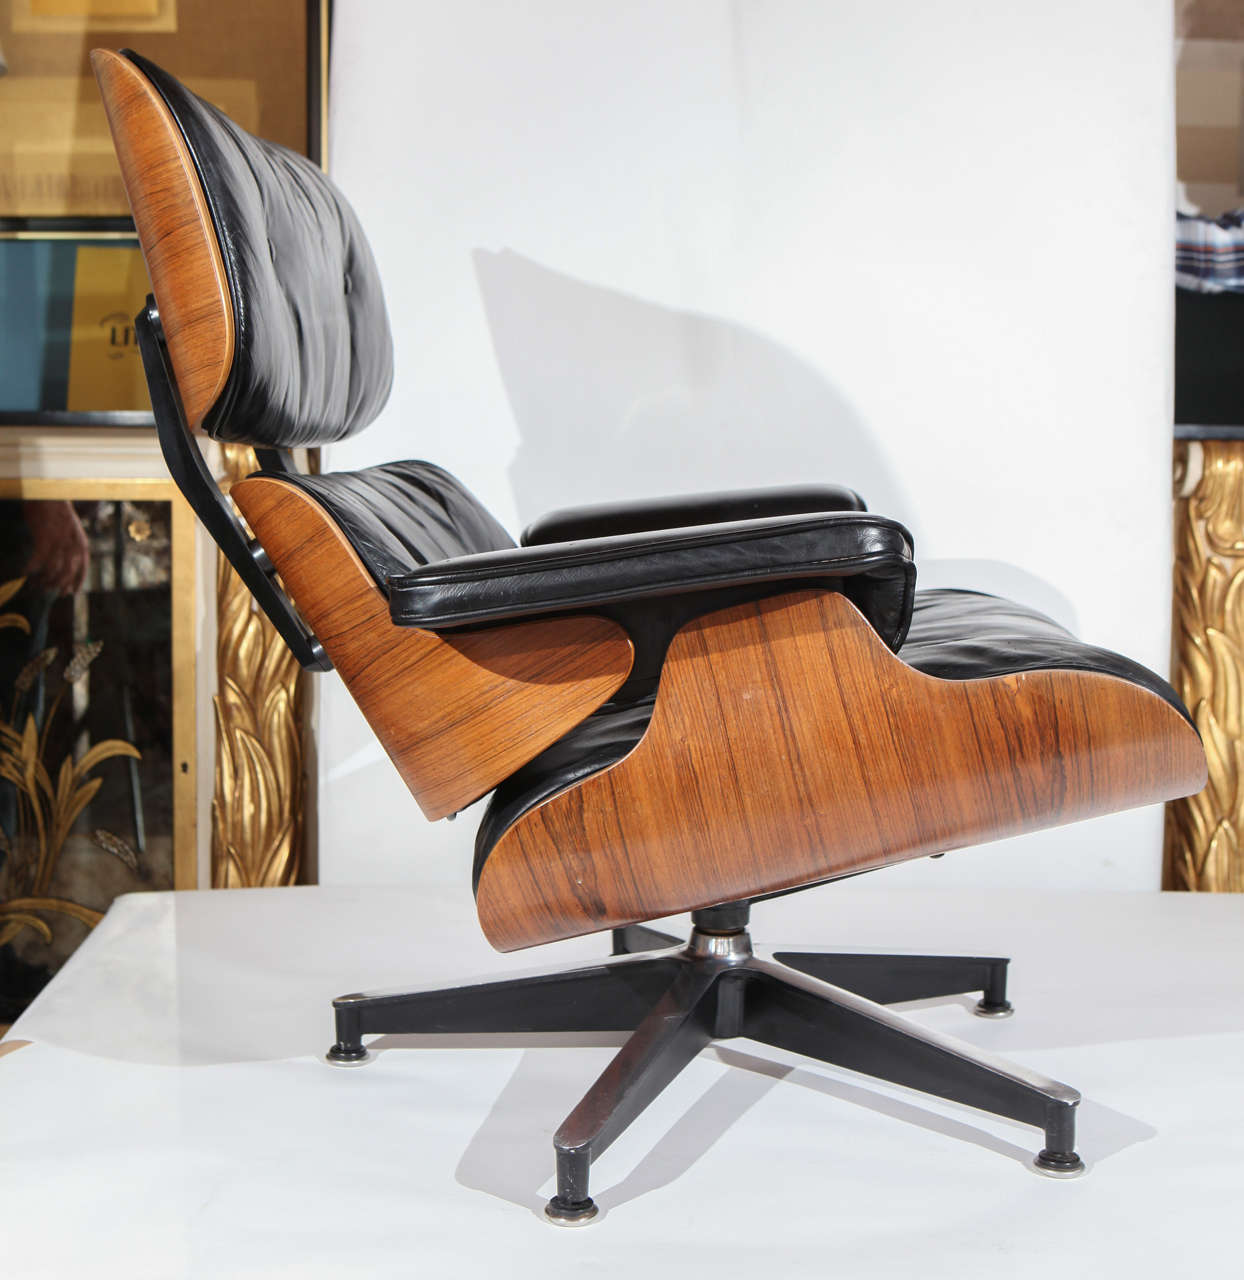 early original eames lounge 670 671 armchair and ottoman at 1stdibs. Black Bedroom Furniture Sets. Home Design Ideas